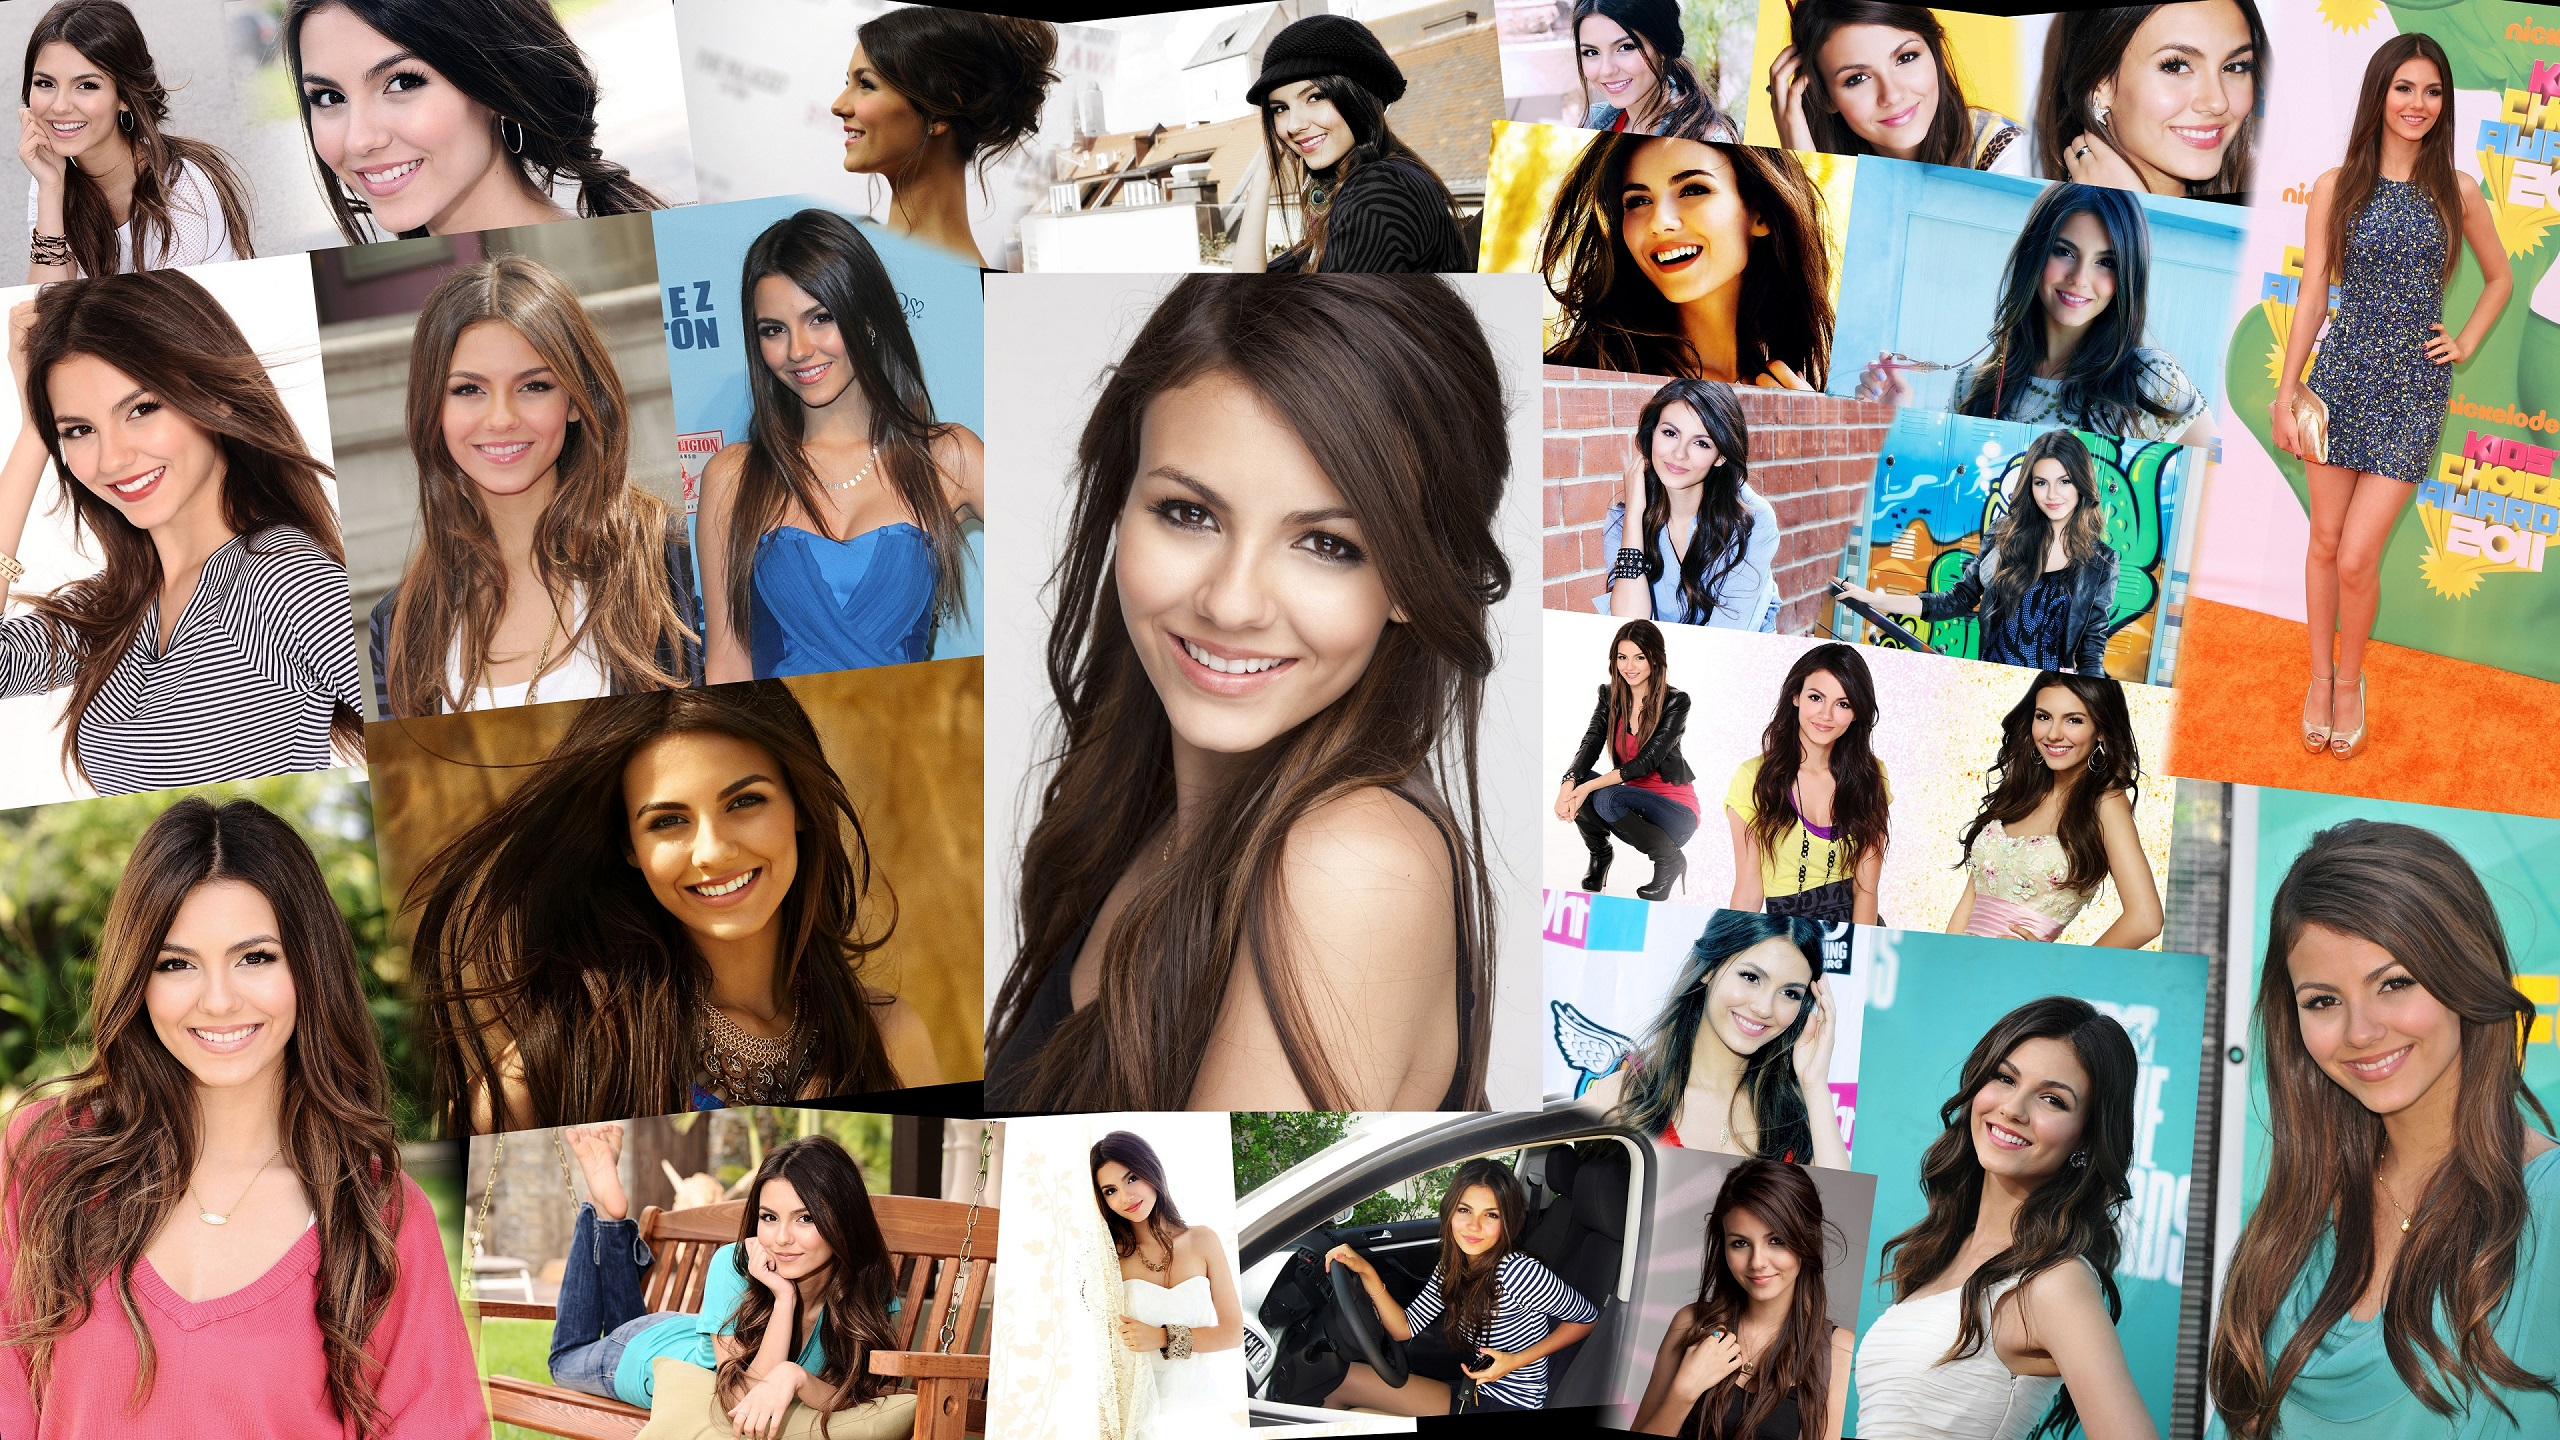 victoria justice collage wallpapers 49031 2560x1440